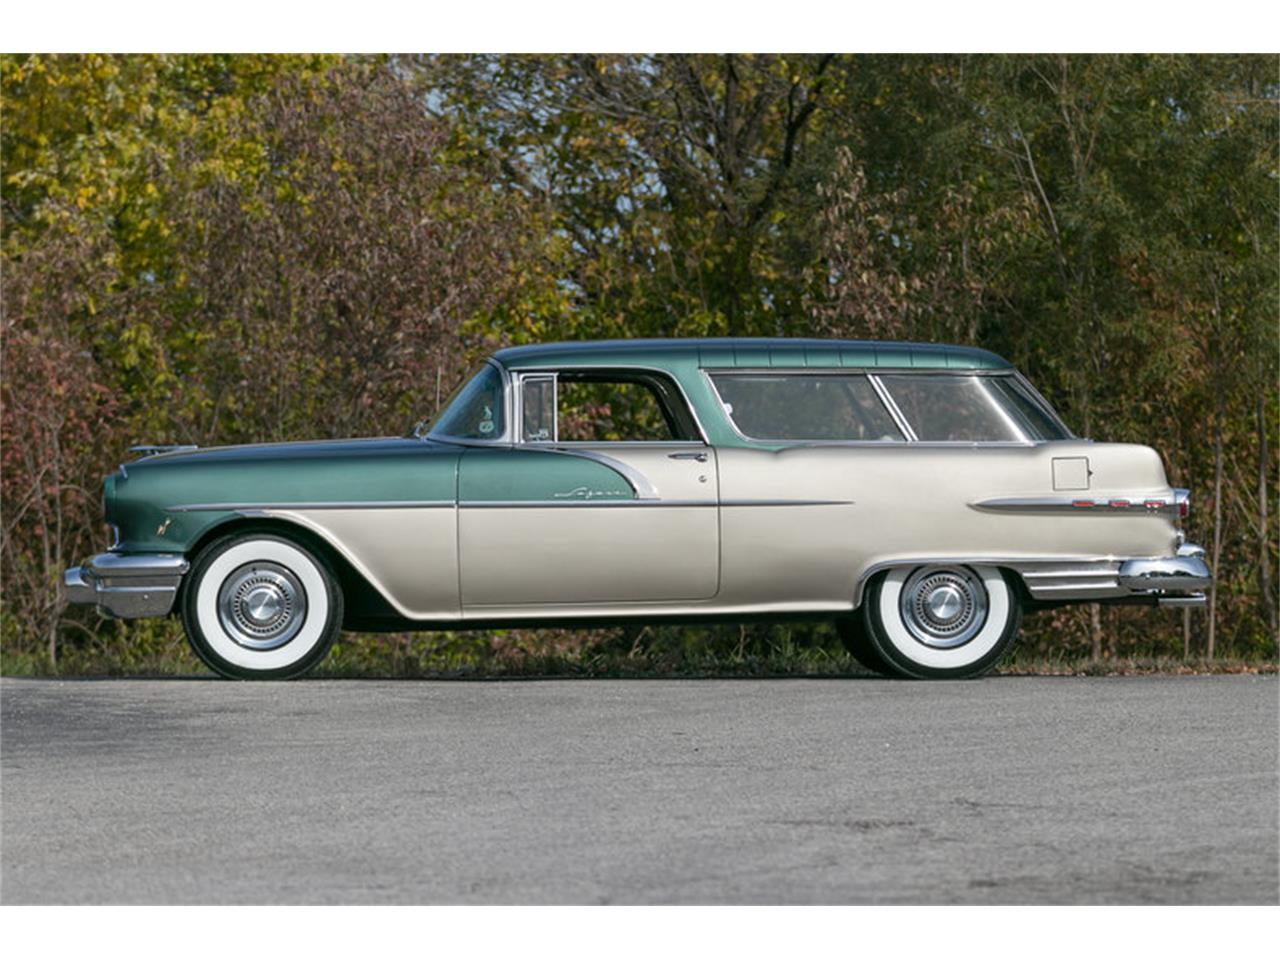 Large Picture of '56 Pontiac Star Chief located in St. Charles Missouri - $49,995.00 - M8Z0